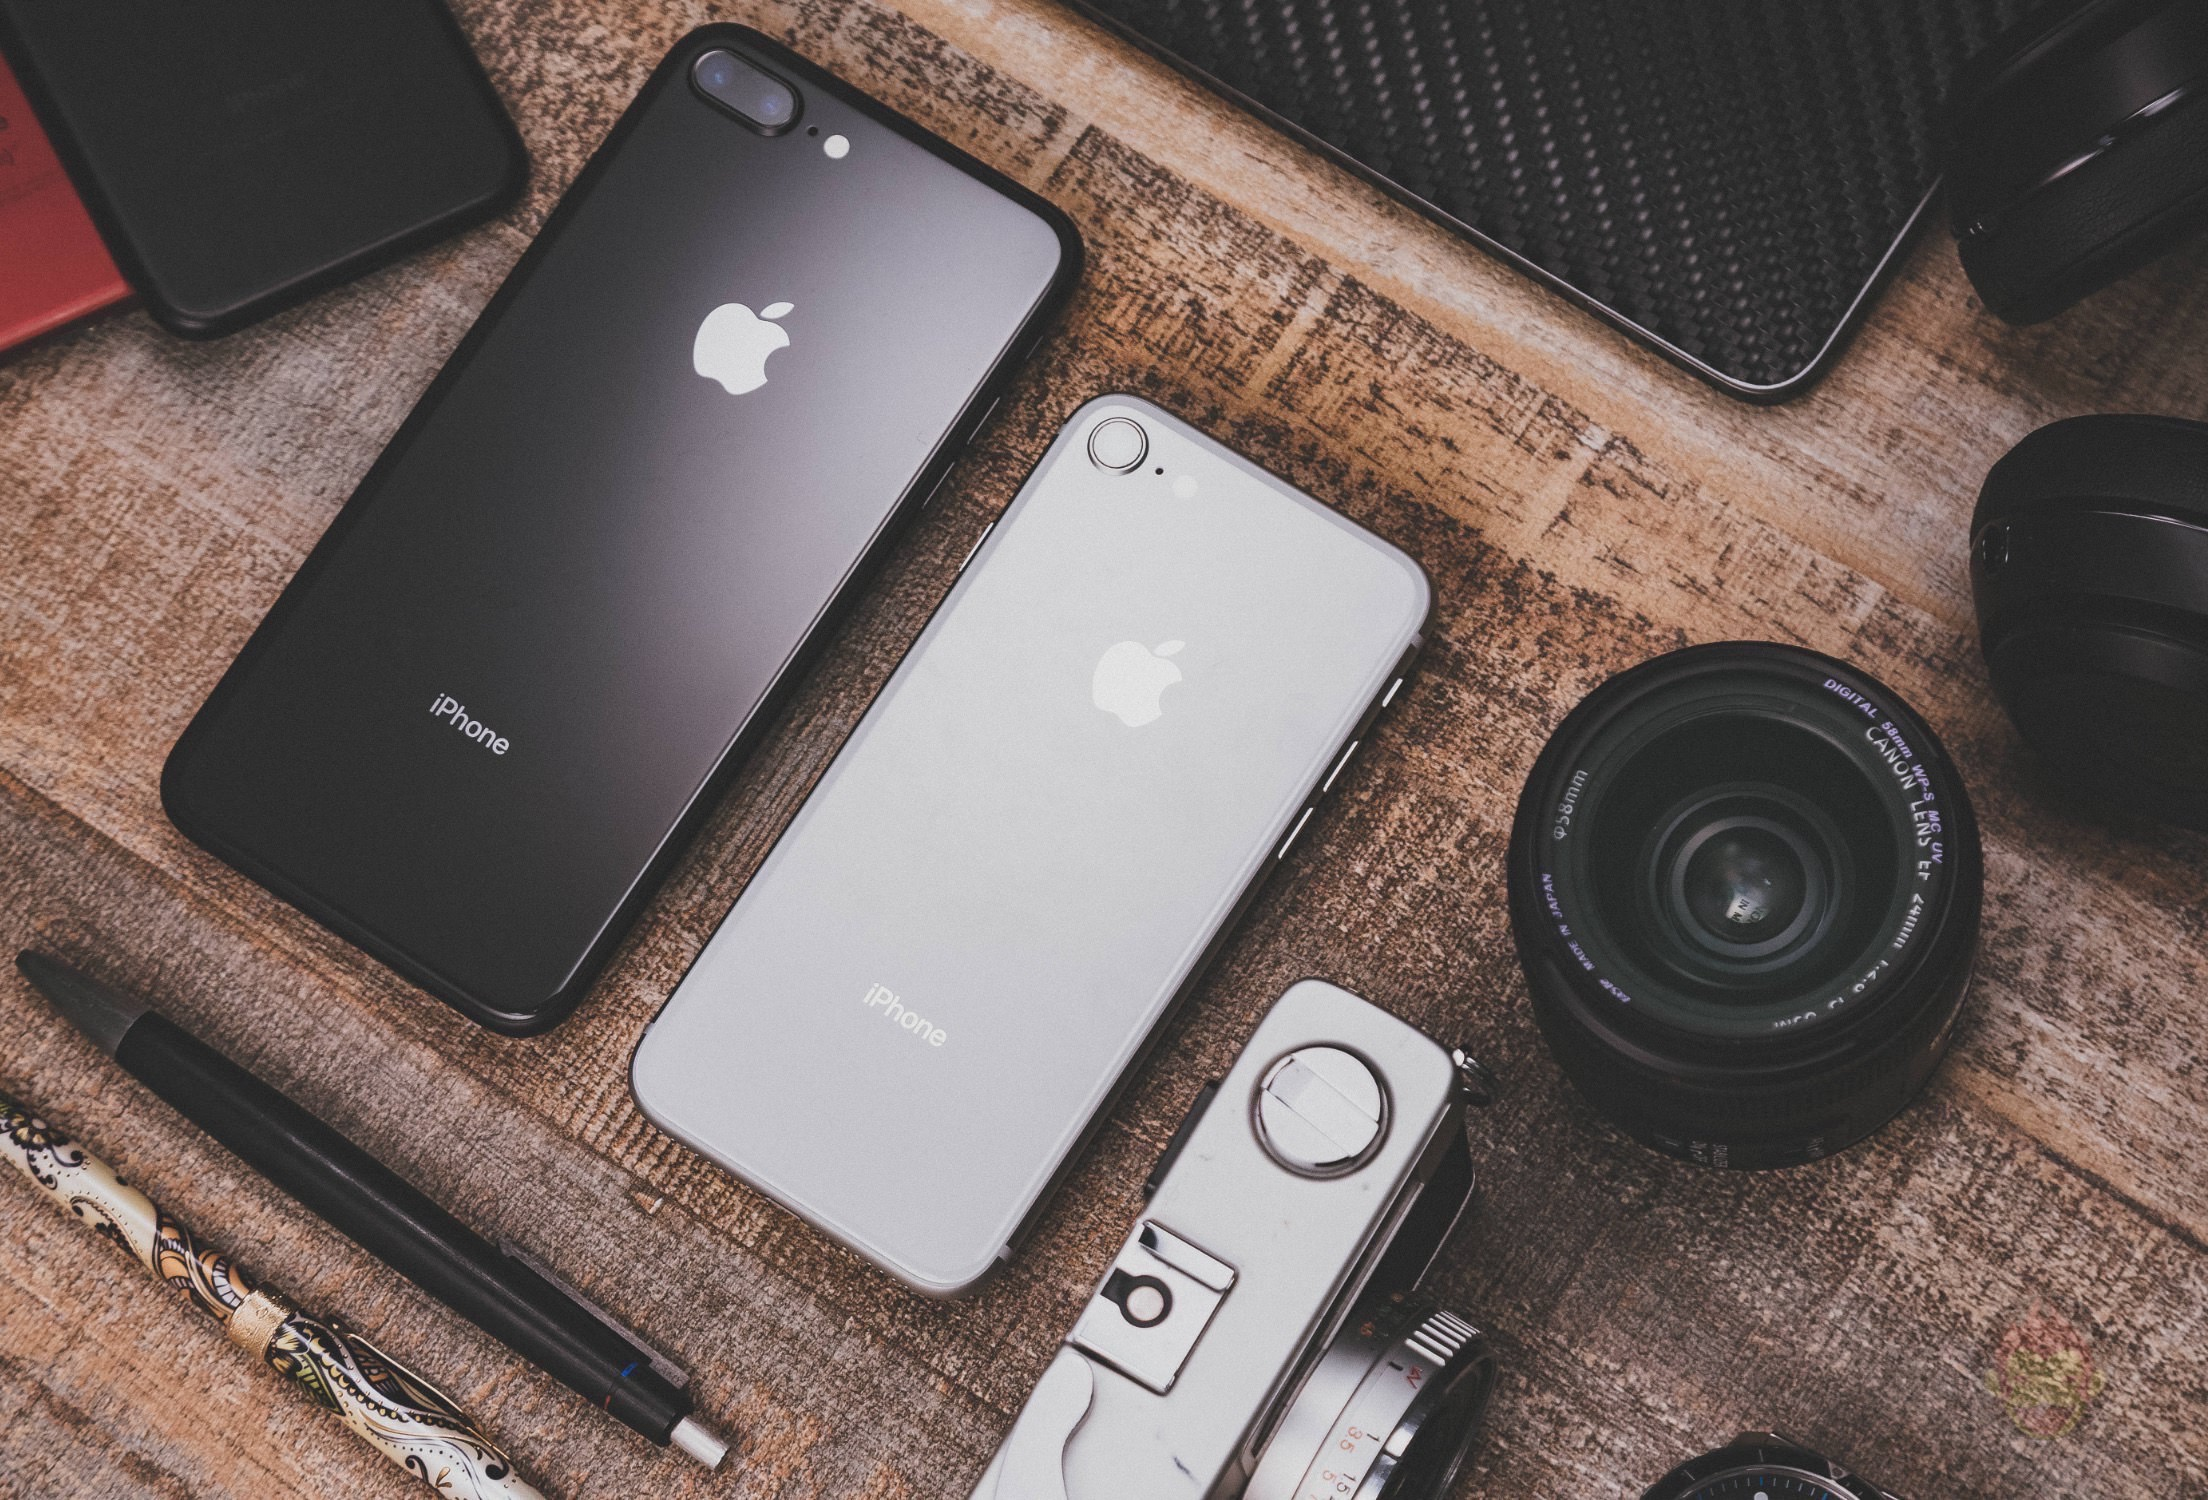 iPhone8-8Plus-with-Gadgets-02.jpg